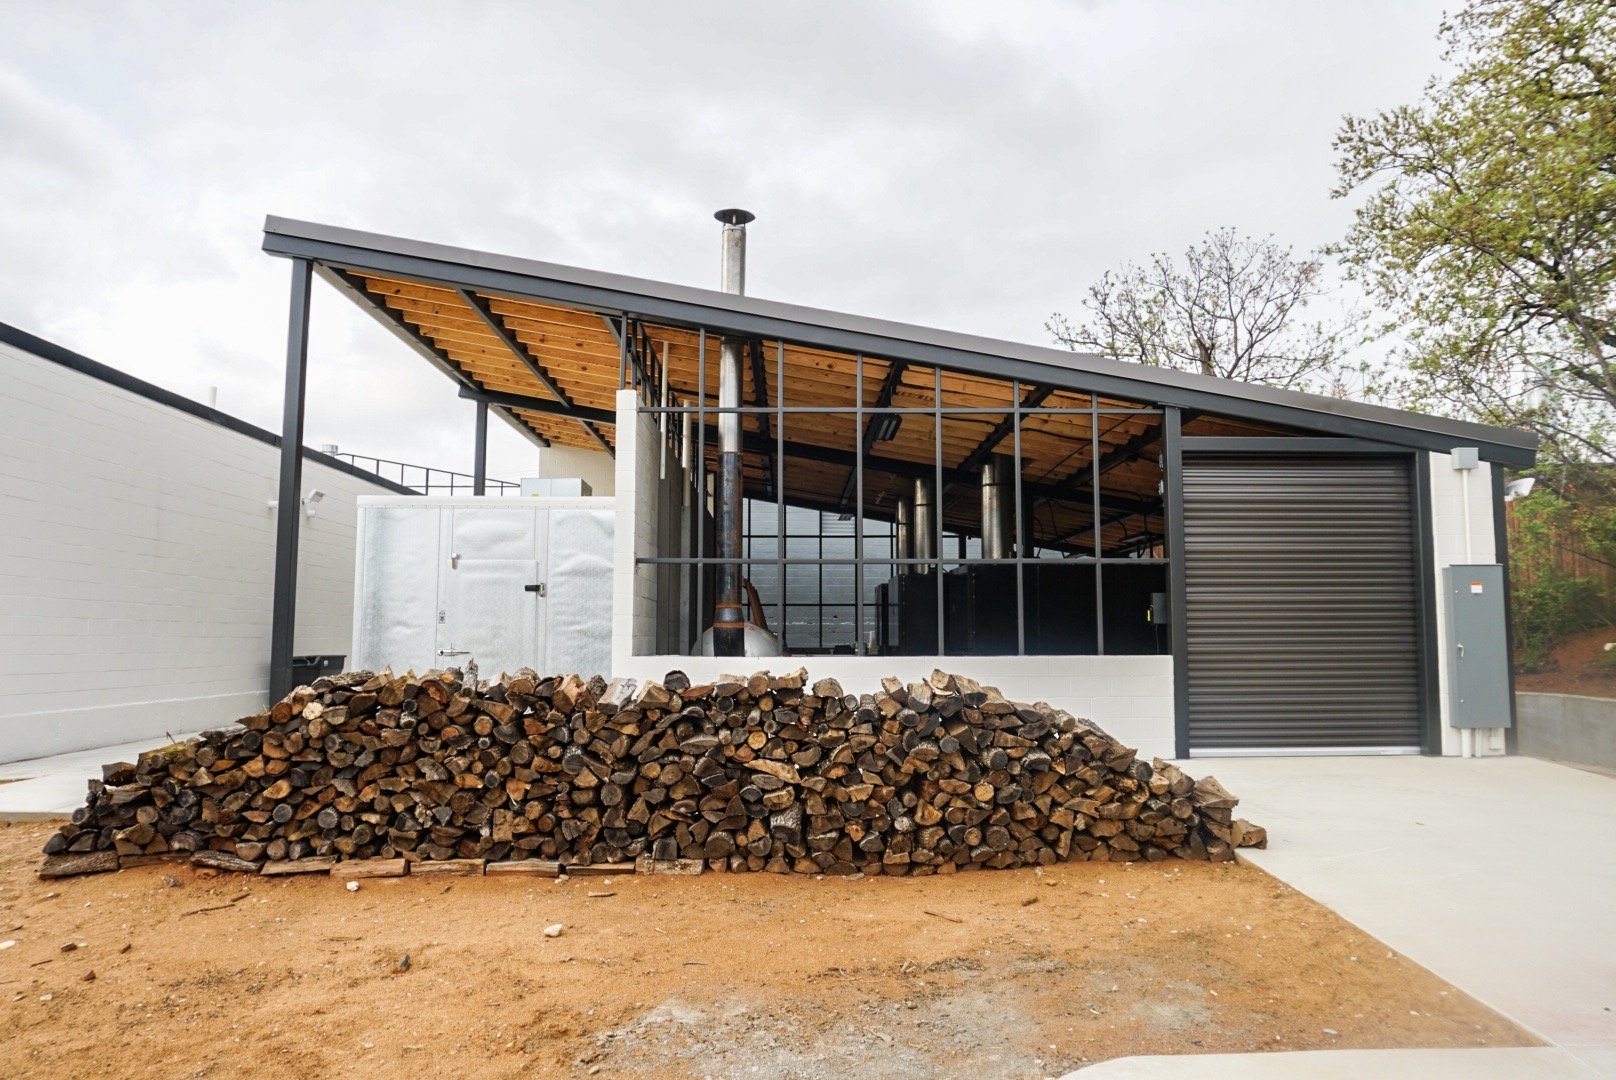 An exterior view of the backside of a white building with a garage door, a smoker, and a large pile of firewood